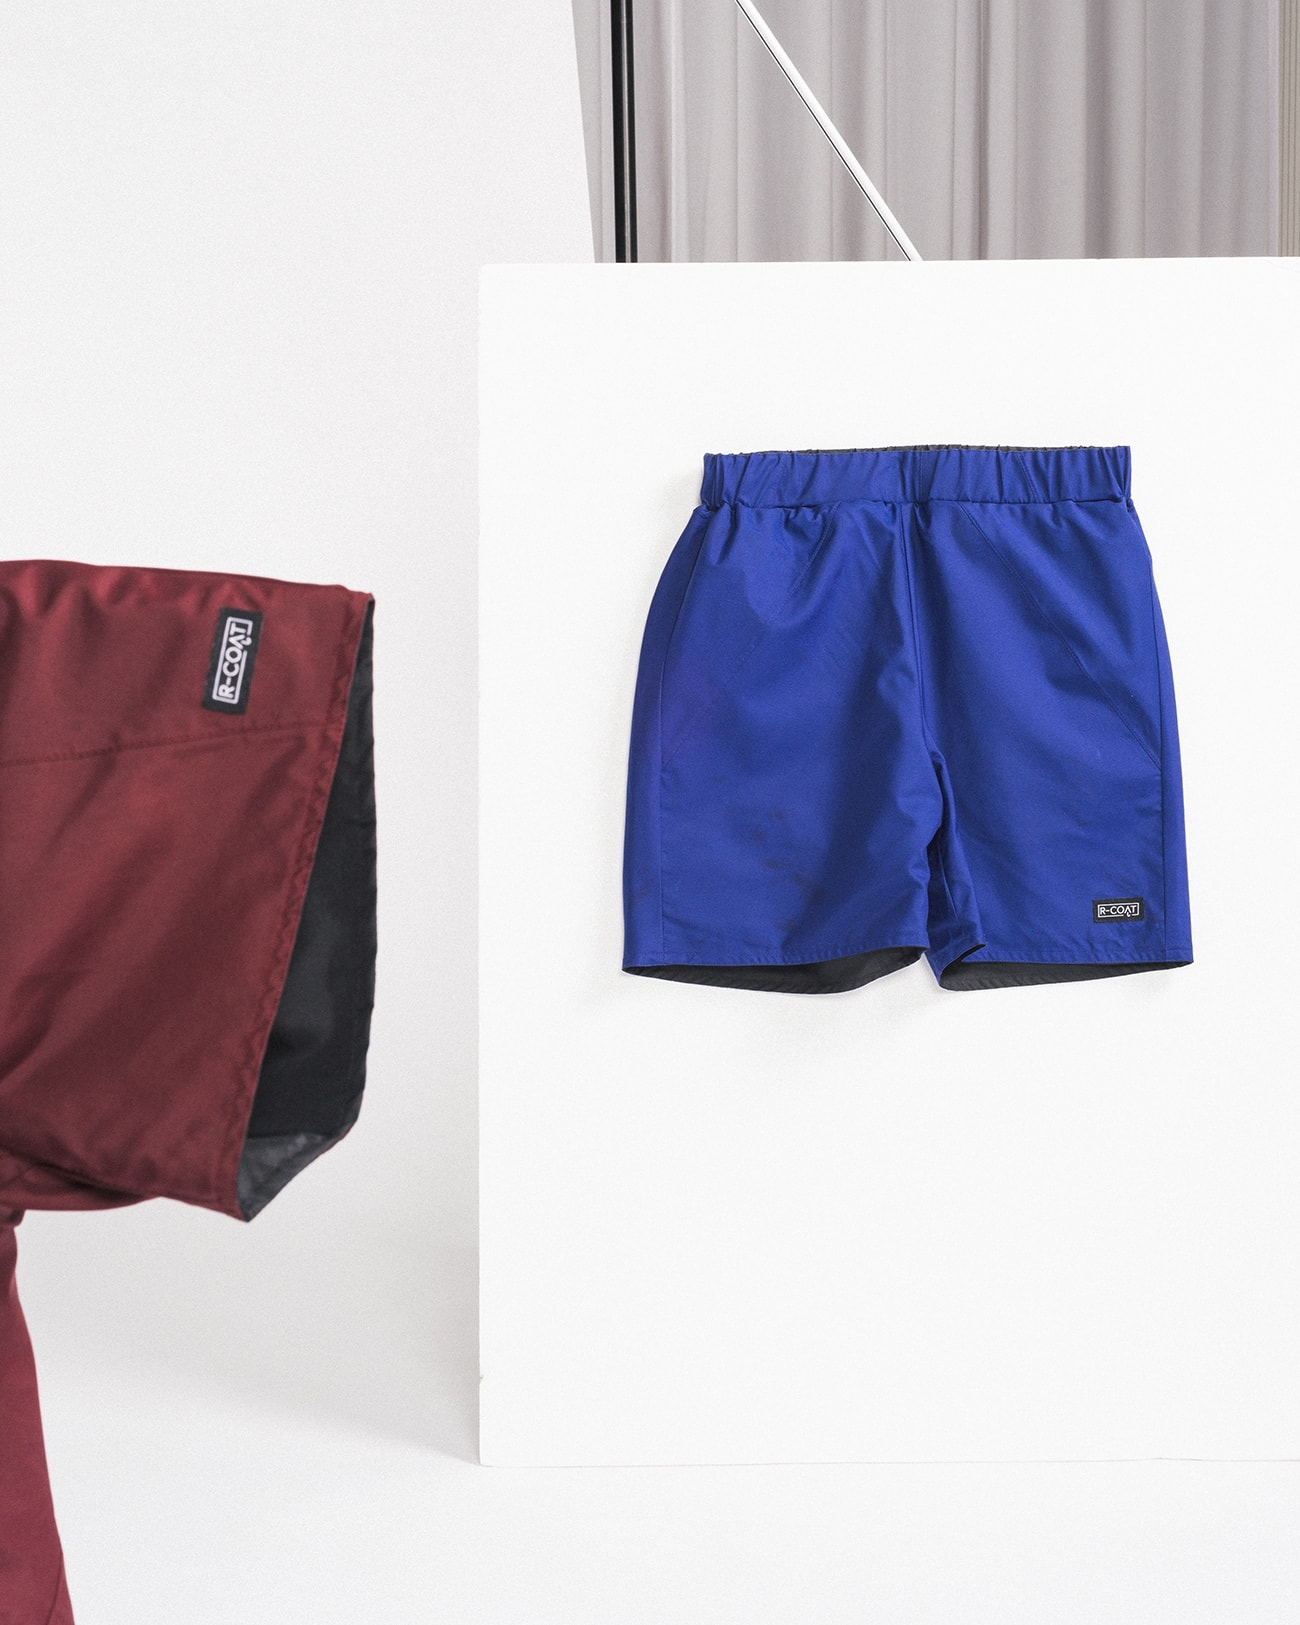 Reversible swim shorts made from upcycled umbrellas found in the streets, made in Portugal by wetheknot